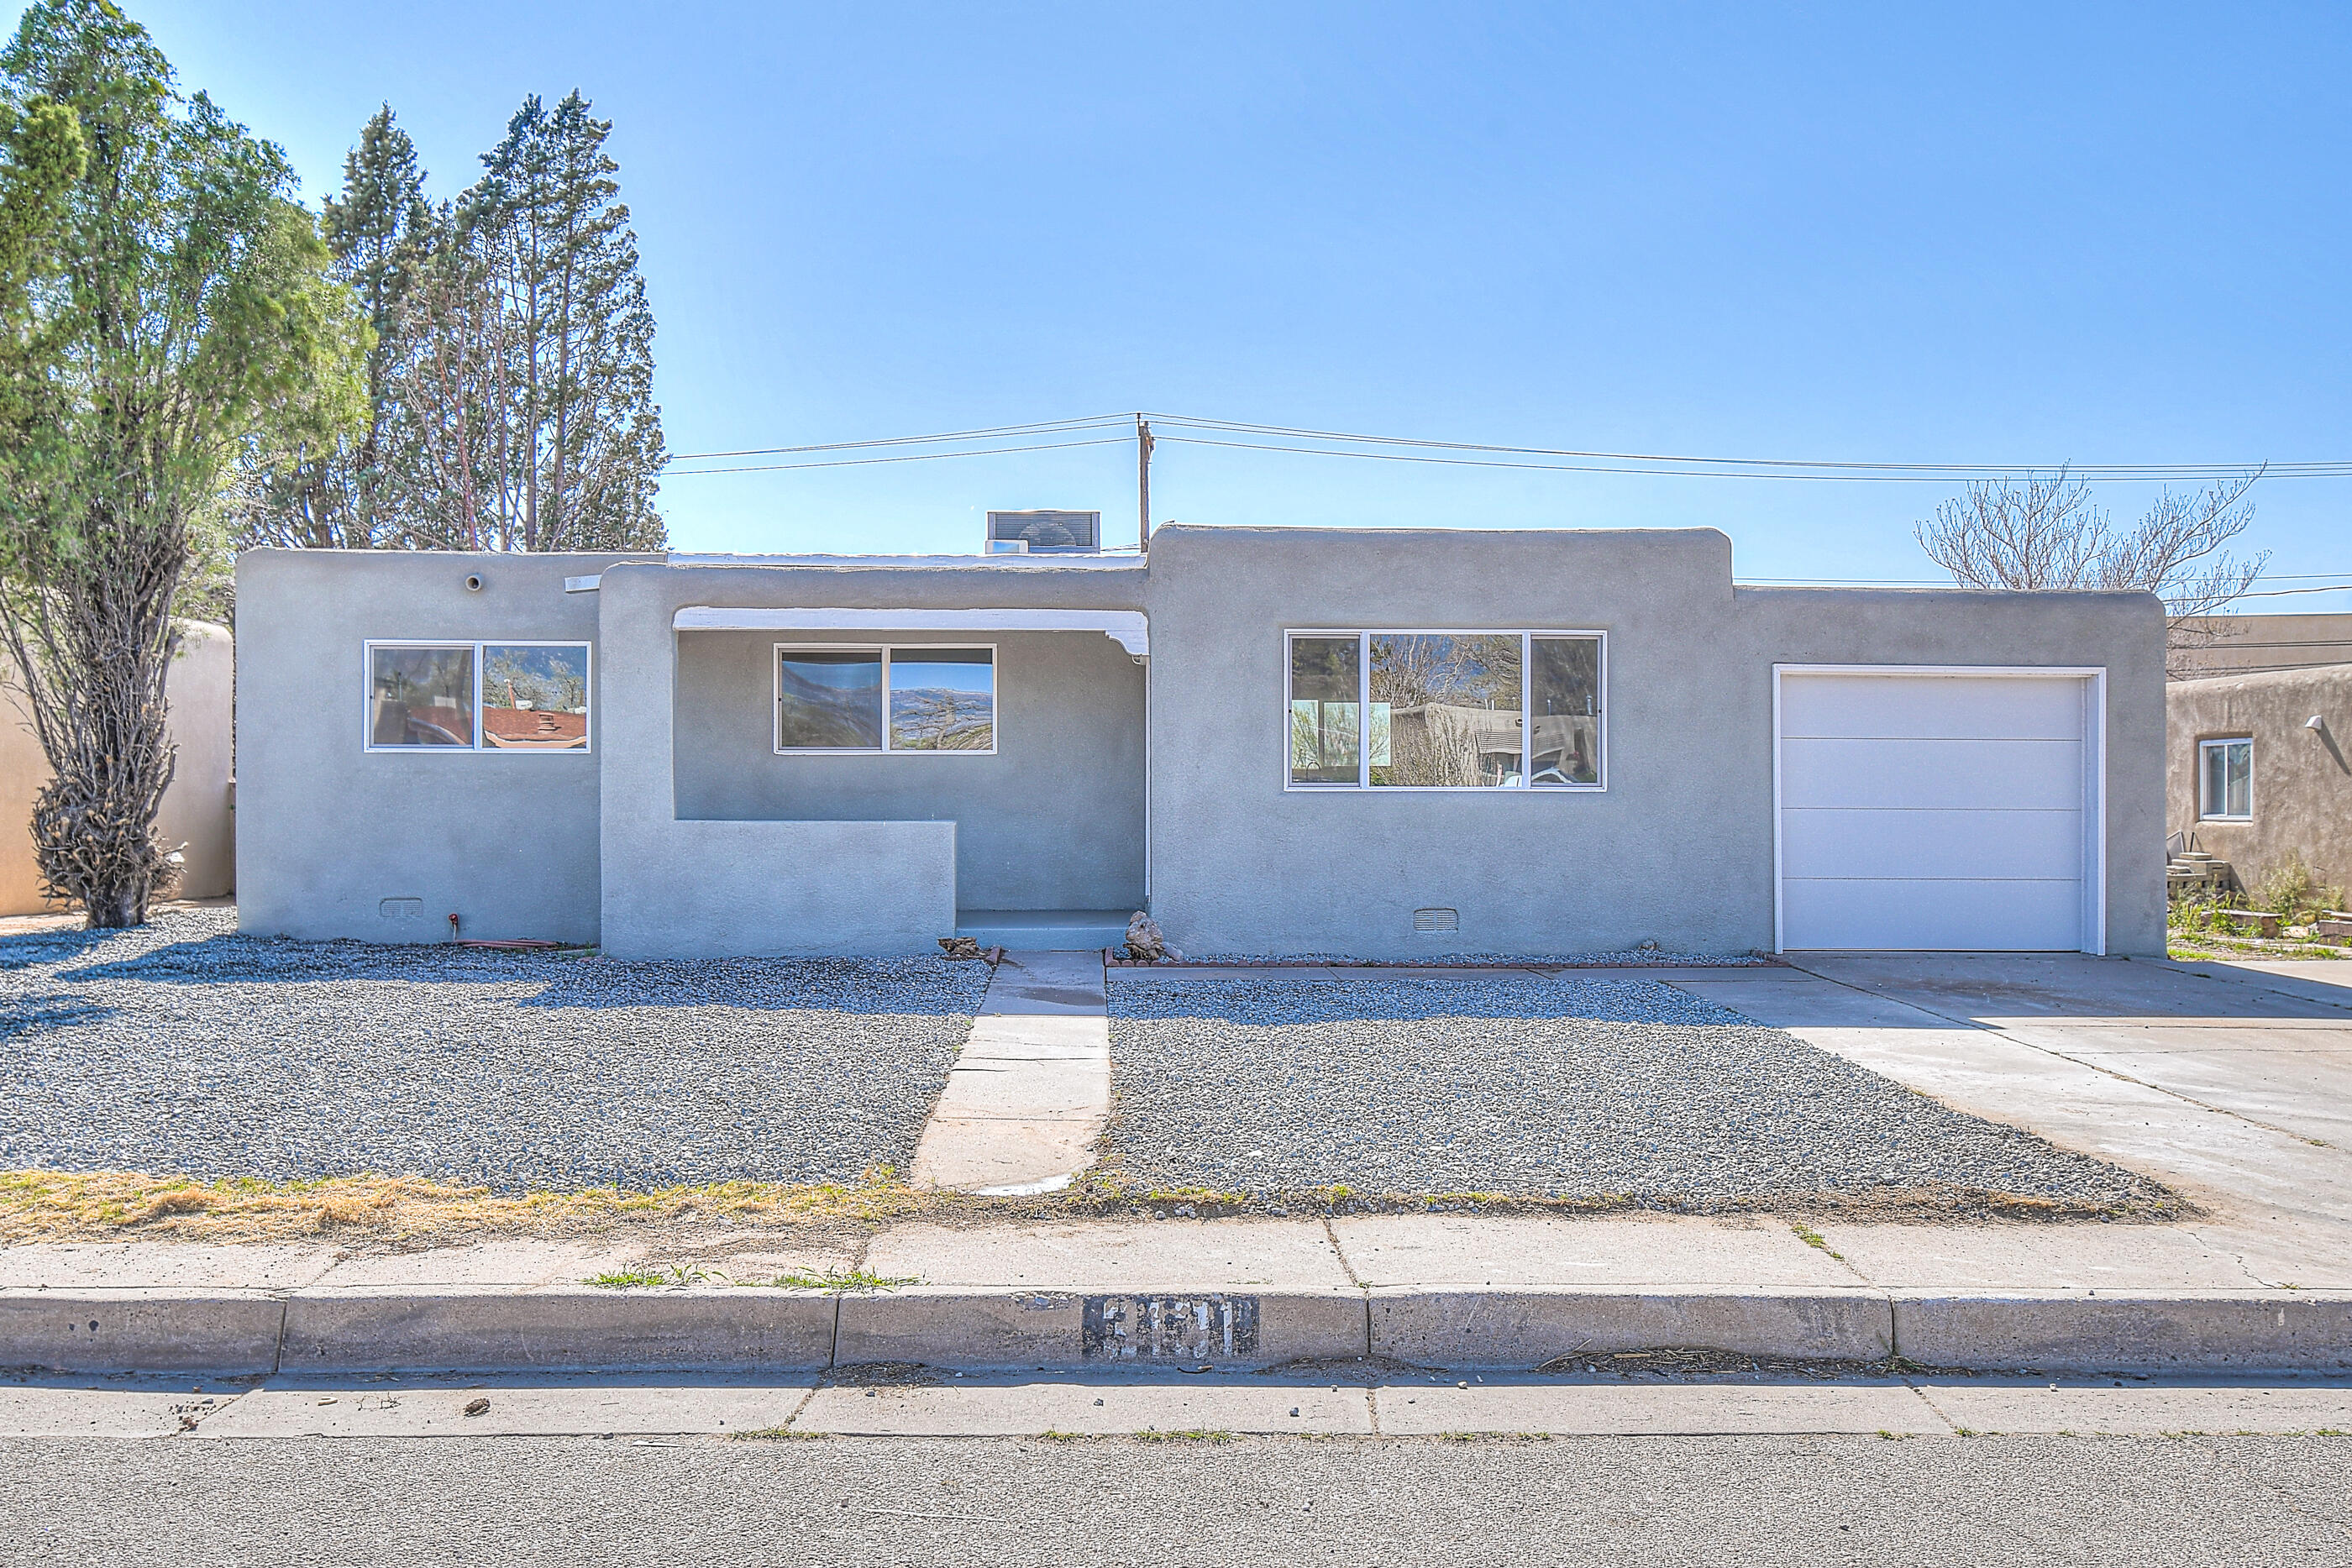 3 bedroom 2bath uptown gem has been tastefully updated and is move in ready!  Close to shopping, malls, eateries with easy freeway access.  Living room opens to beautiful updated kitchen that includes new stainless steel appliances.  Bathrooms are gorgeous with updated backsplash!   The yard is great sized with backyard access!